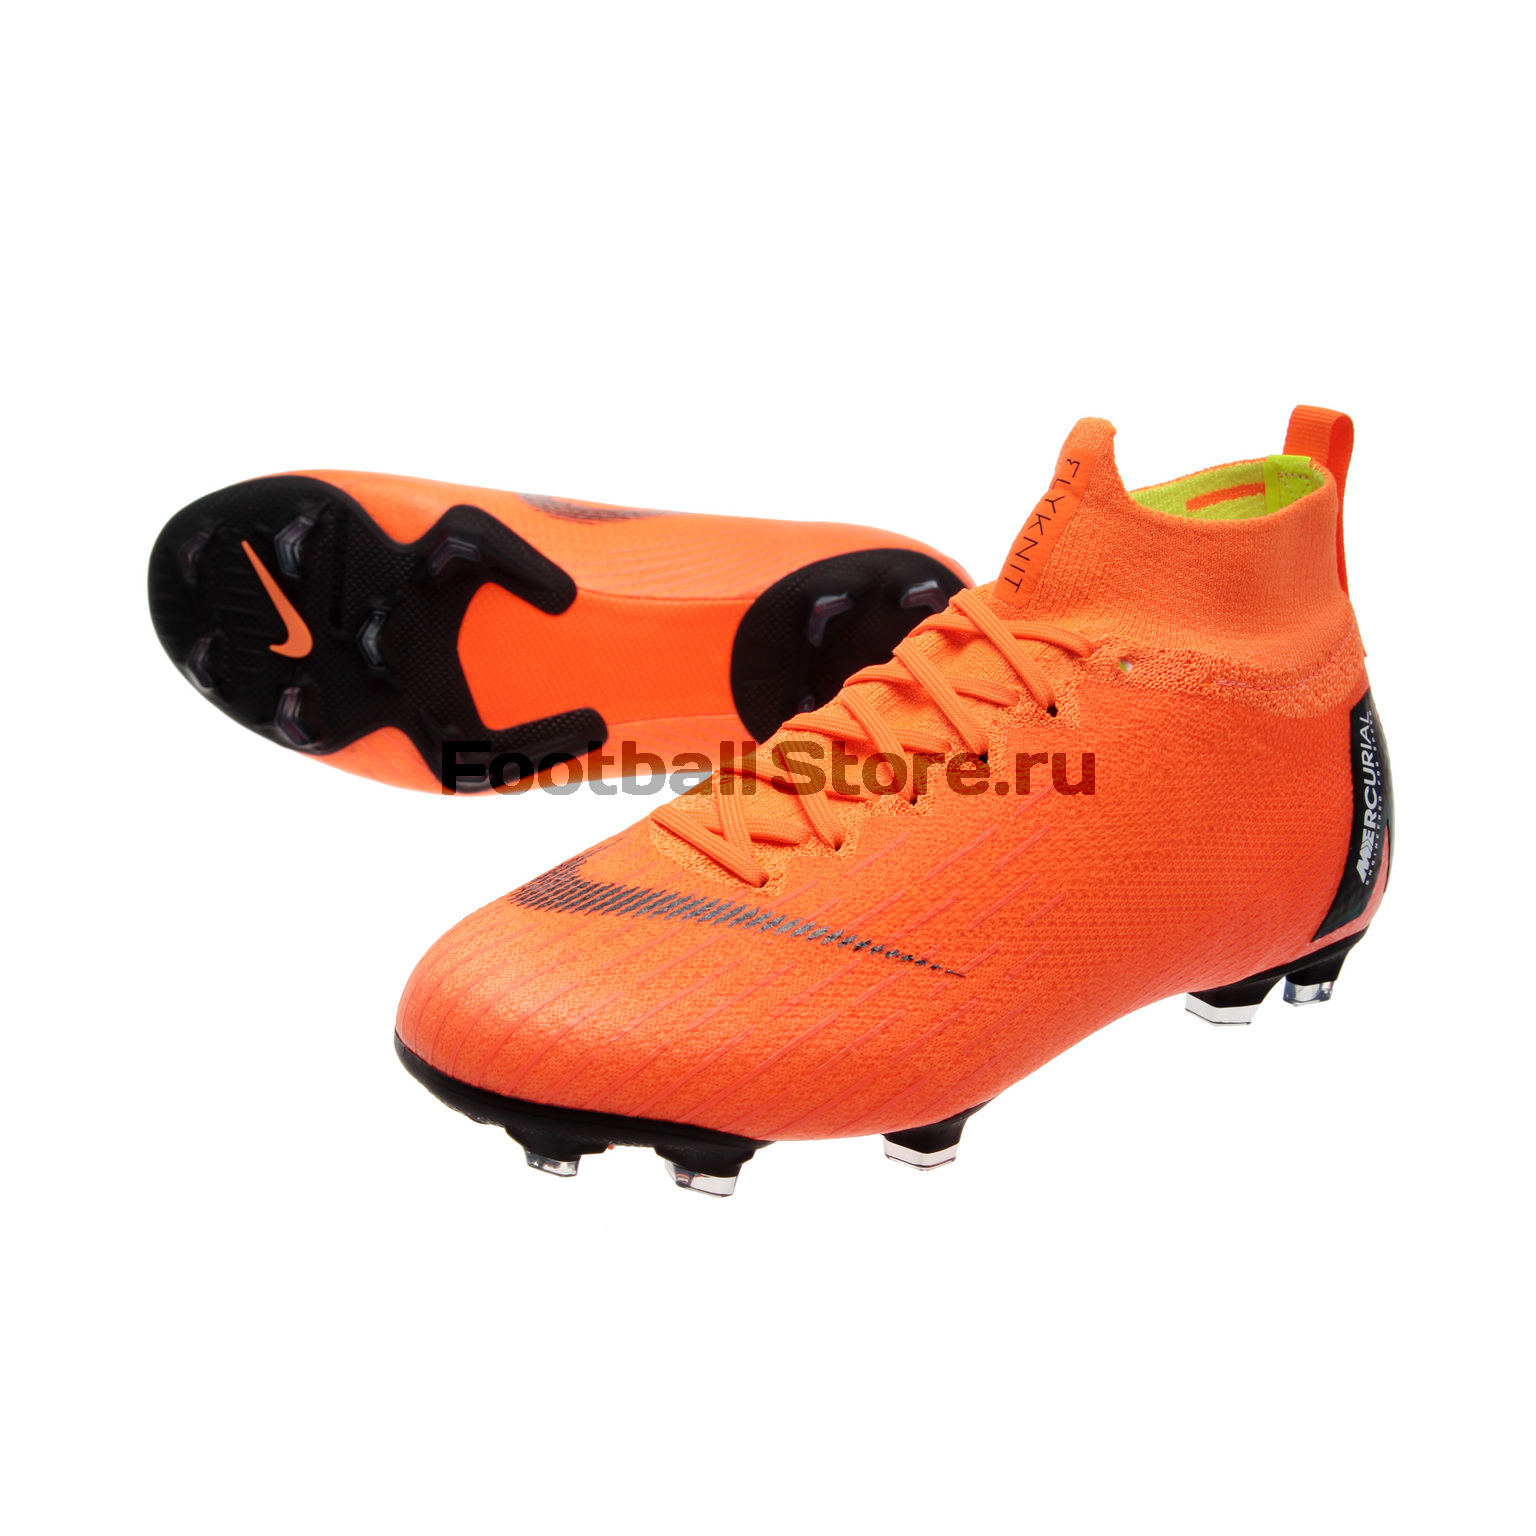 Бутсы Nike JR Superfly 6 Elite FG AH7340-810 чулок д щитков nike guard lock elite sleeve su12 se0173 011 m чёрный